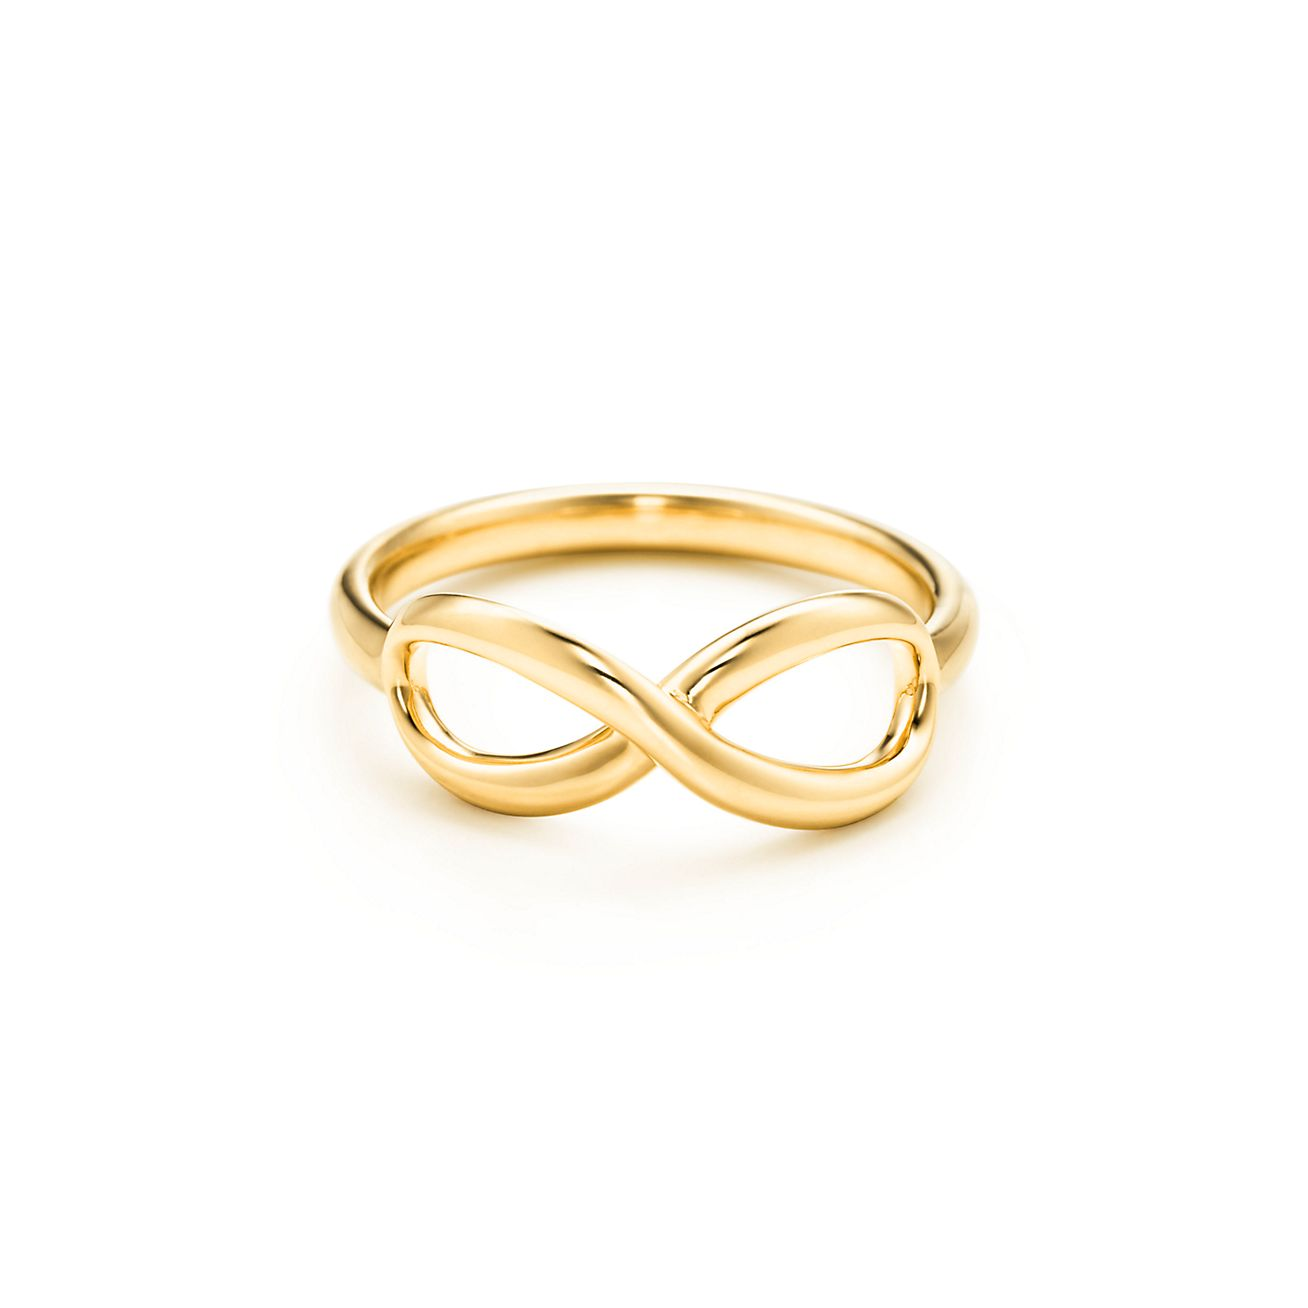 Ring gold  Tiffany Infinity ring in 18k gold. | Tiffany & Co.